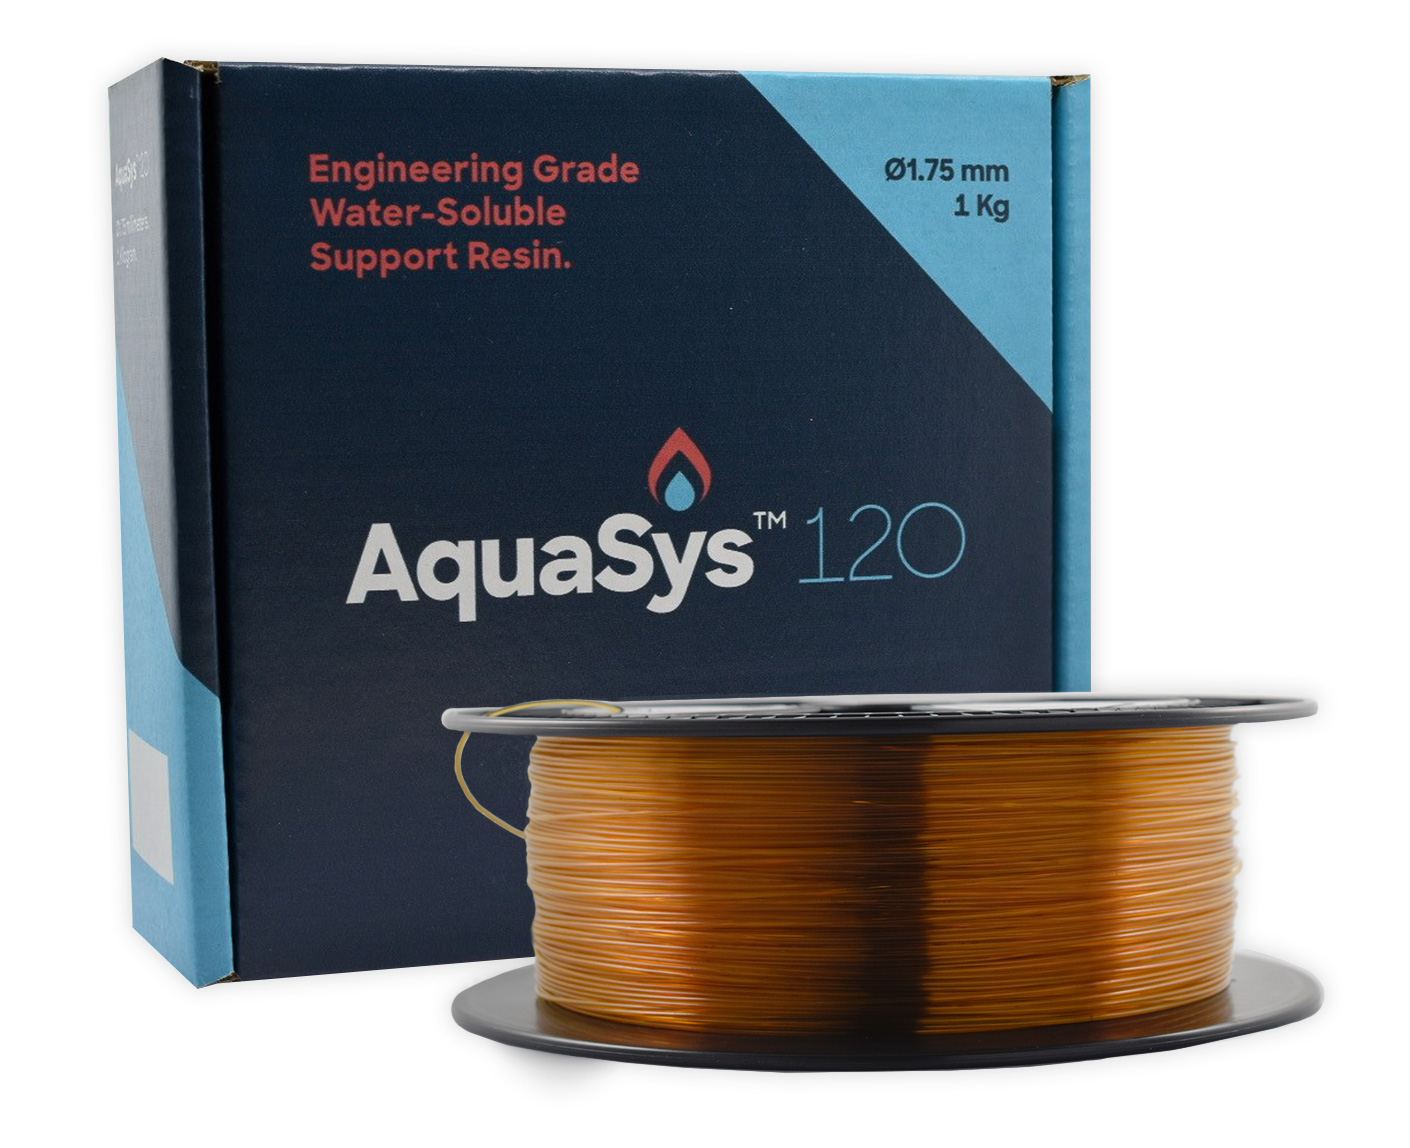 AquaSys 120. Photo via Infinite Material Solutions.